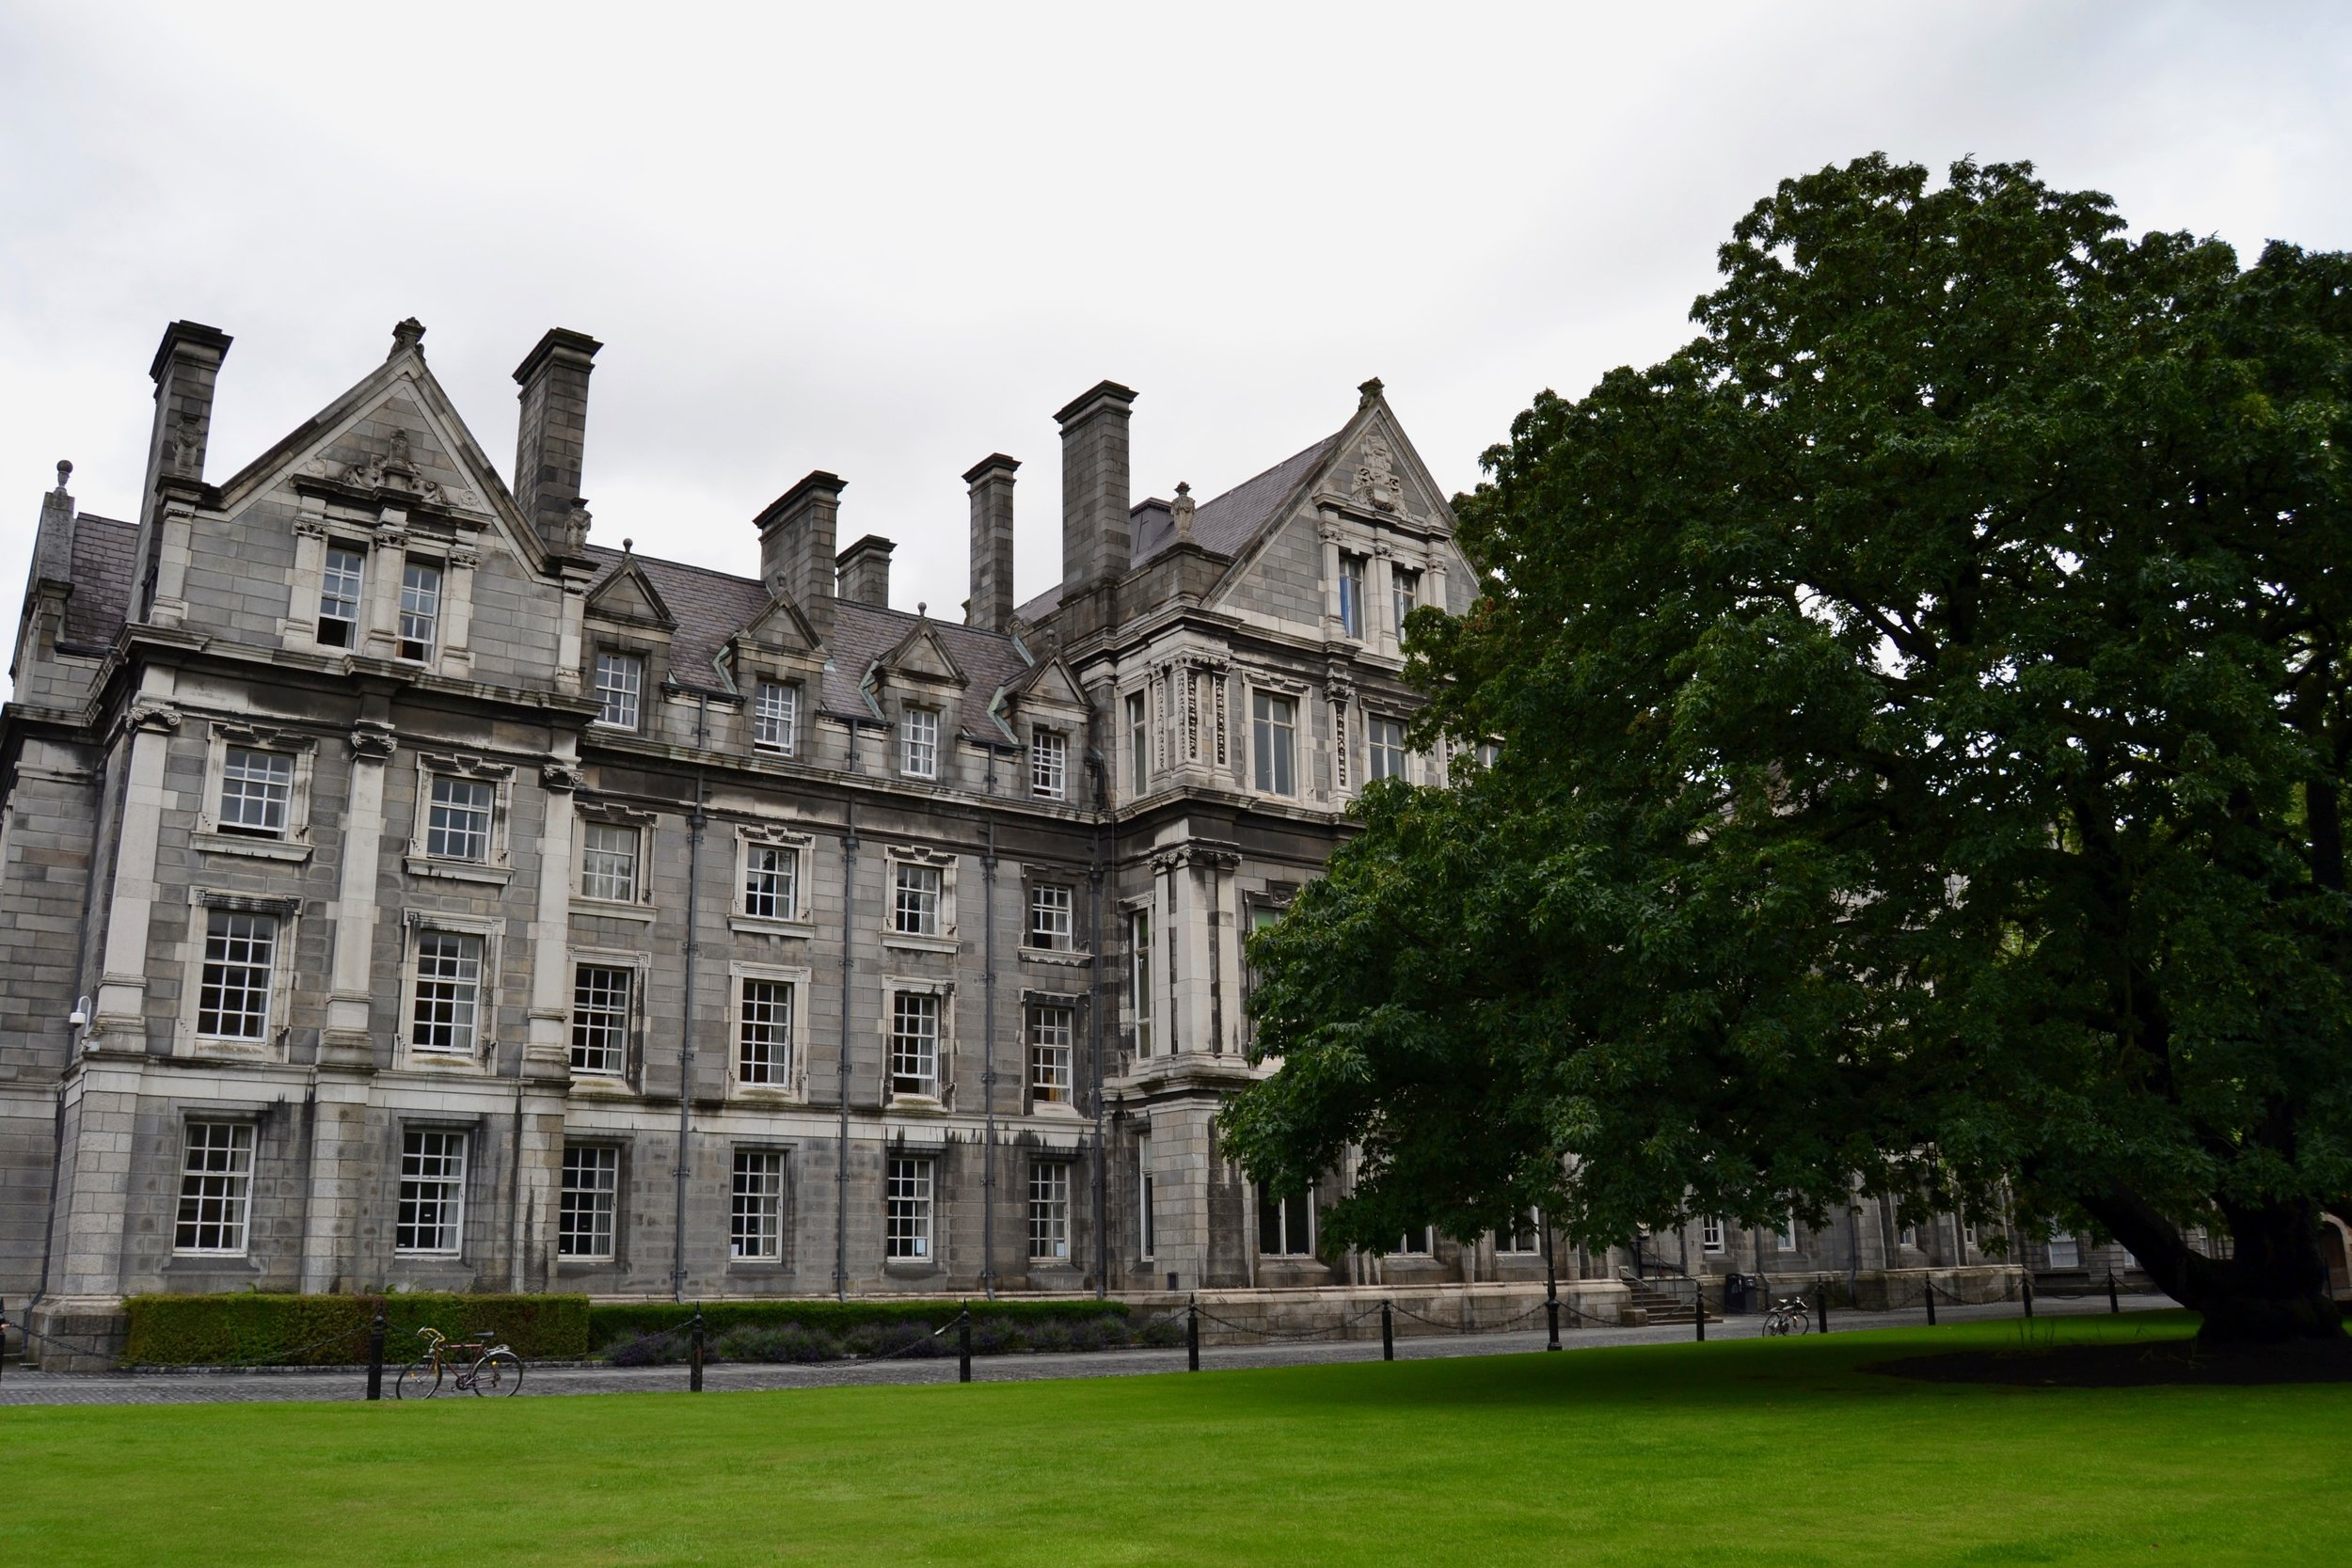 The Graduates Memorial Building on the grounds of Trinity College Dublin